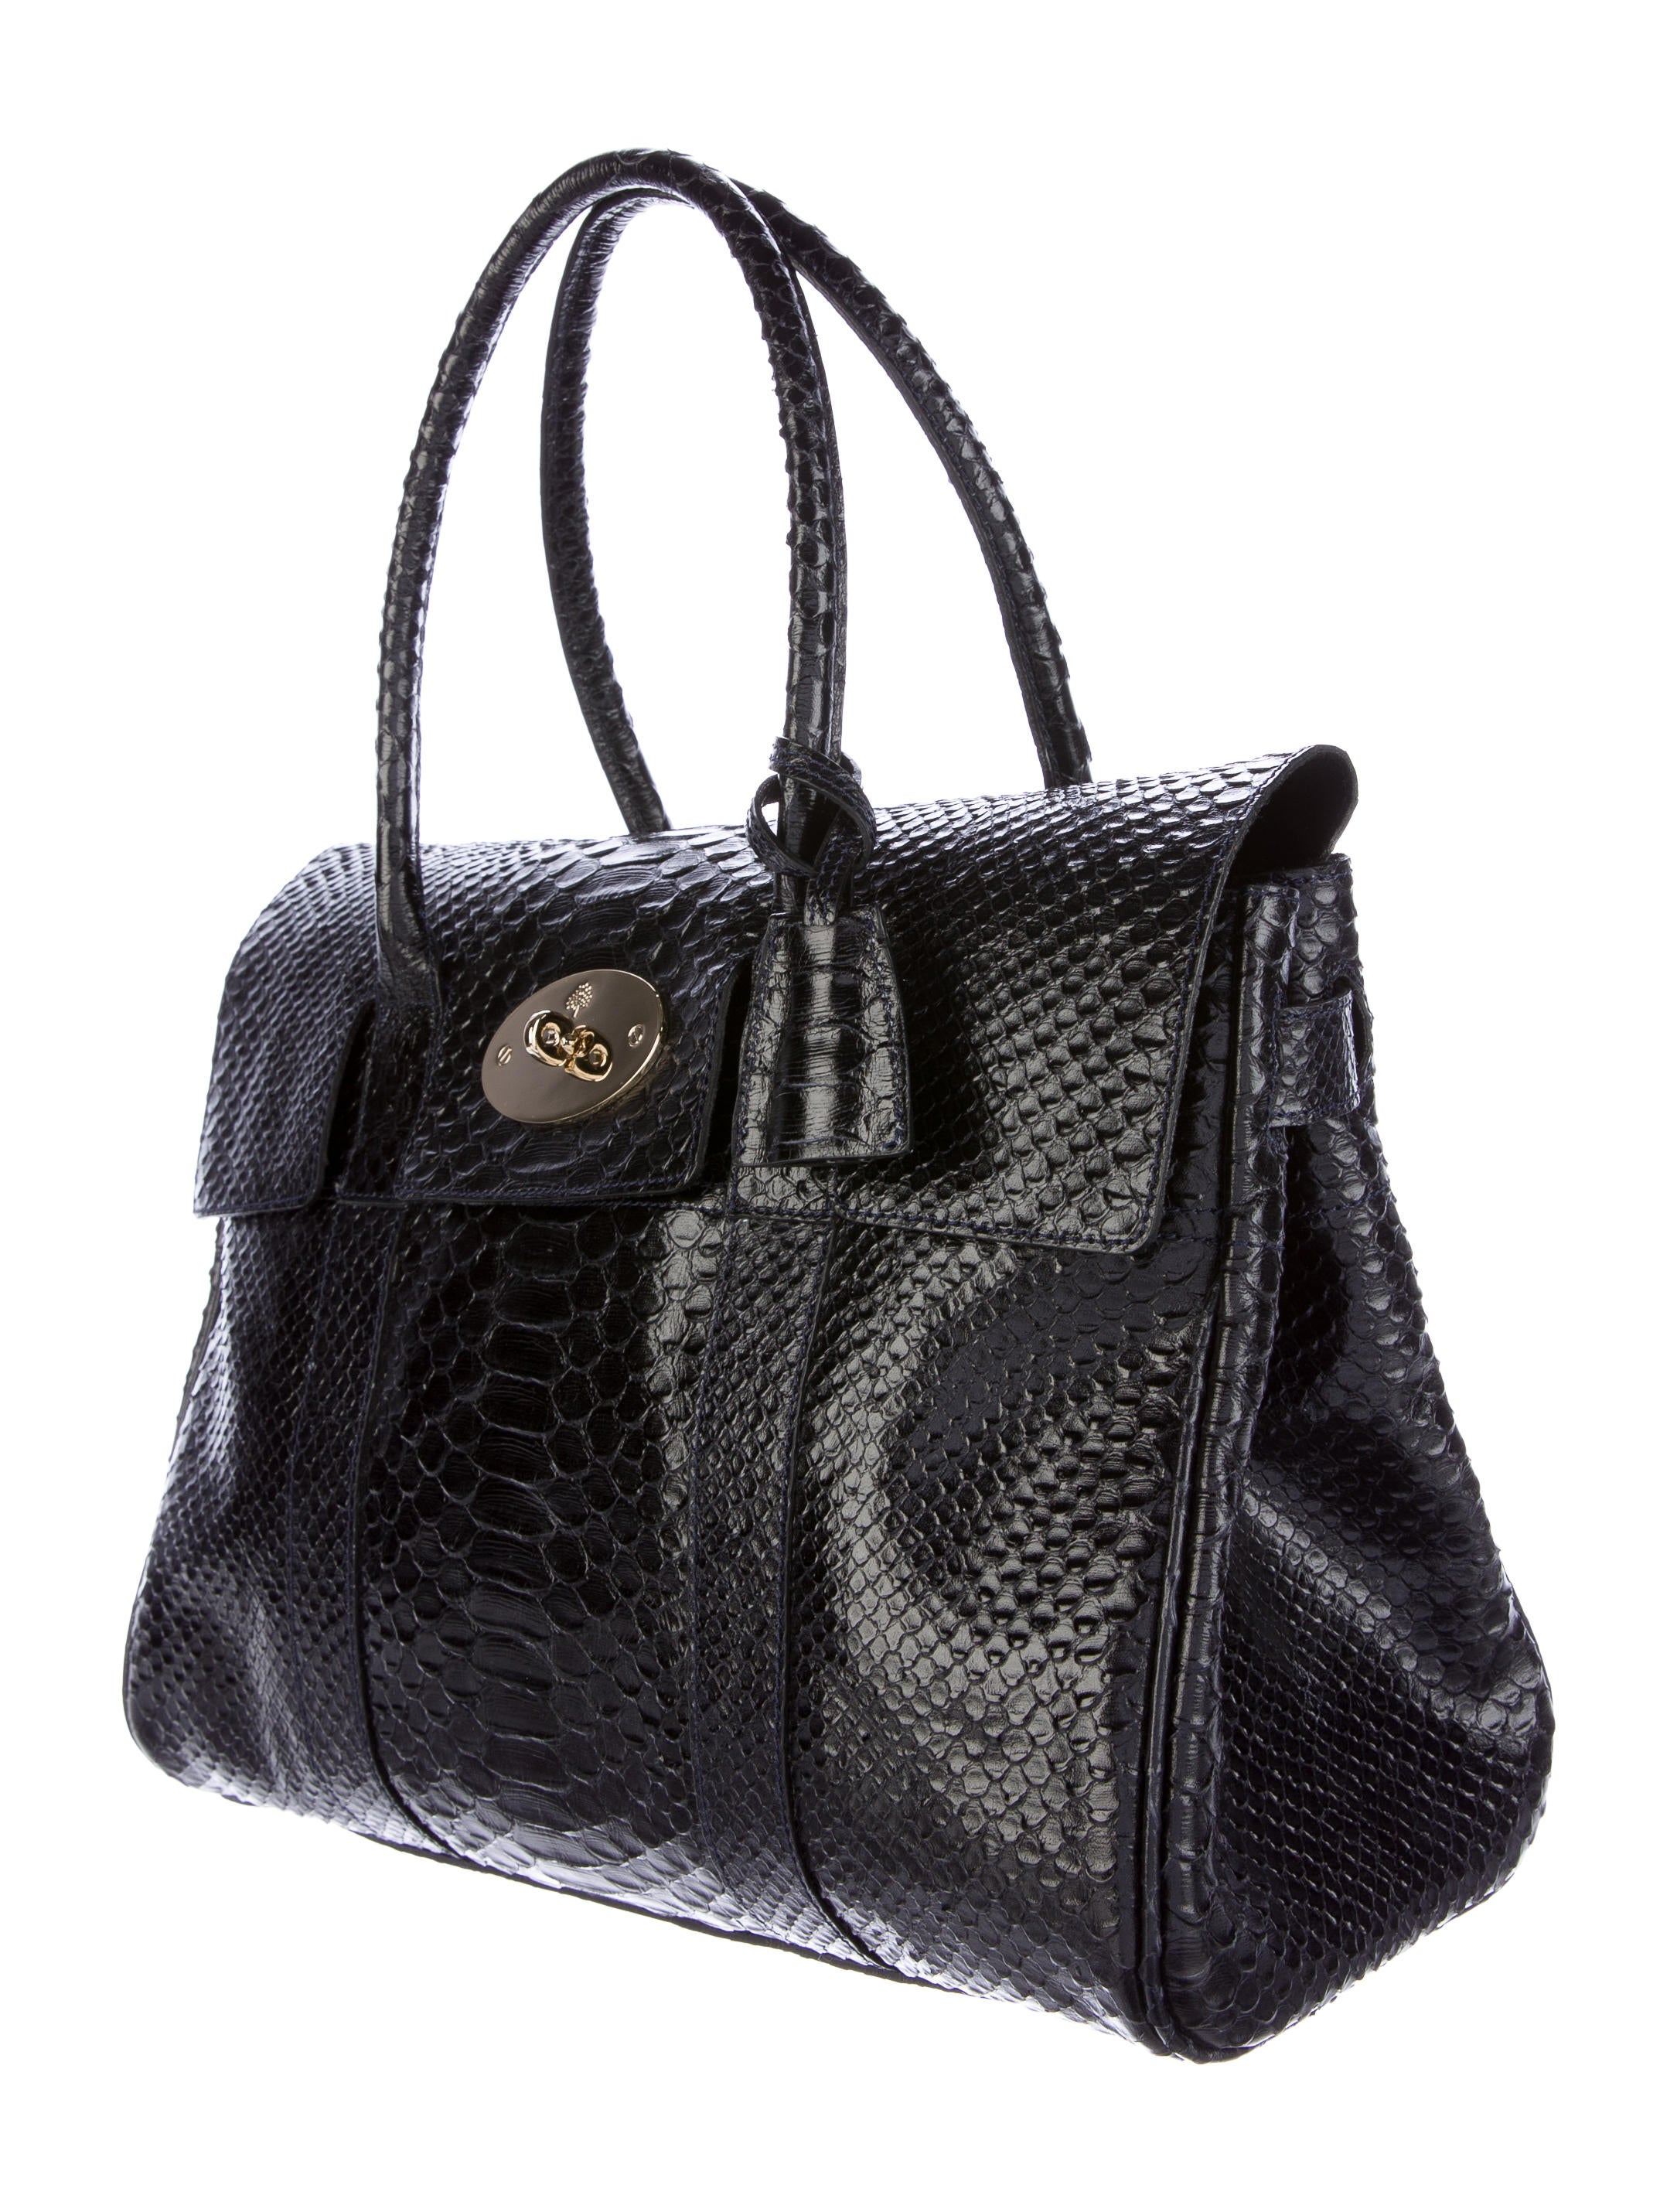 Mulberry bayswater embossed leather bag handbags for The bayswater